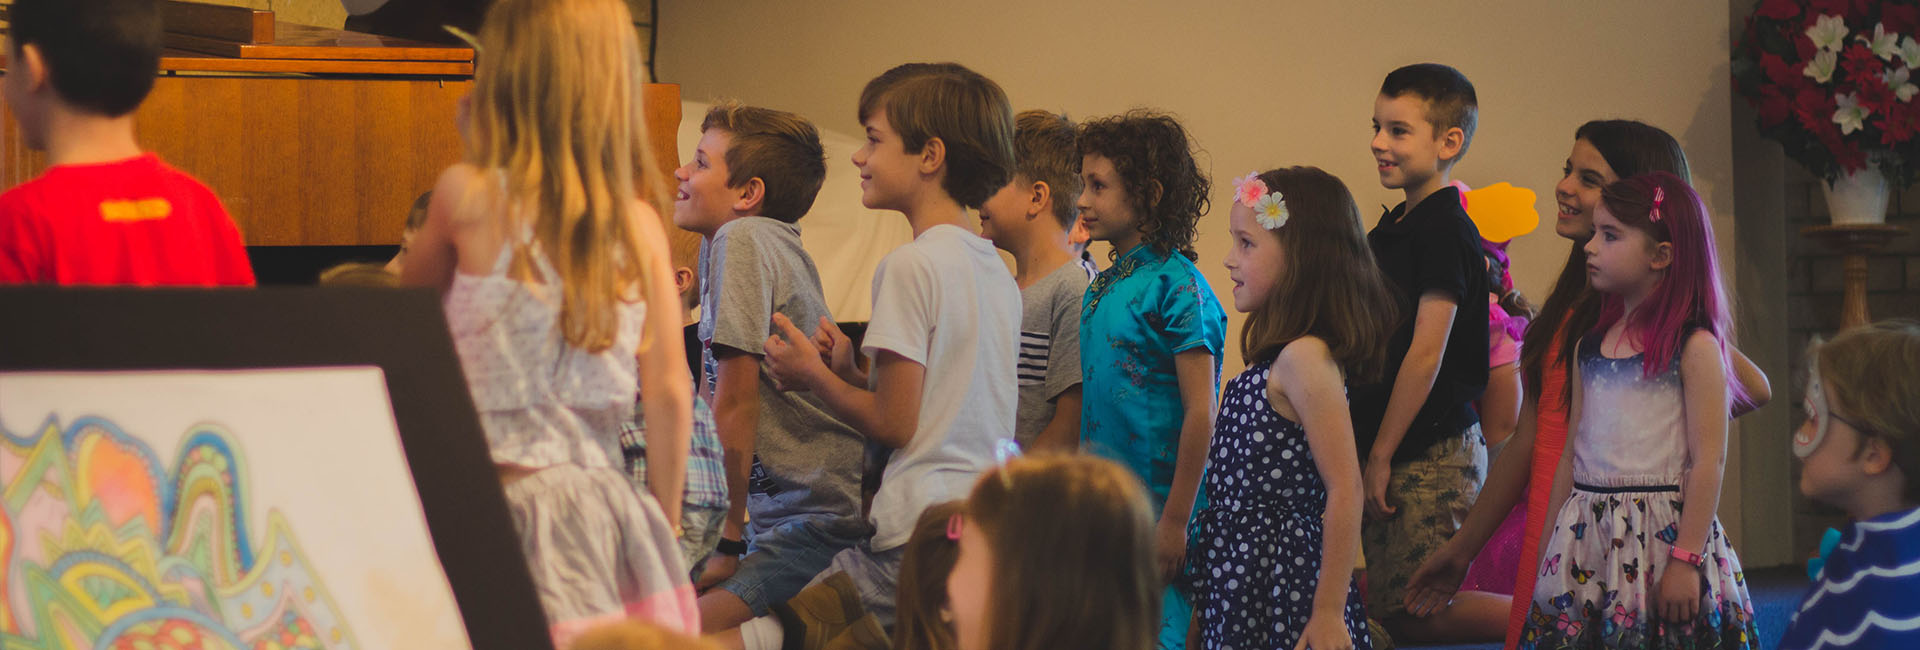 Green Point Baptist Church Gosford Kids Ministry Featured Images